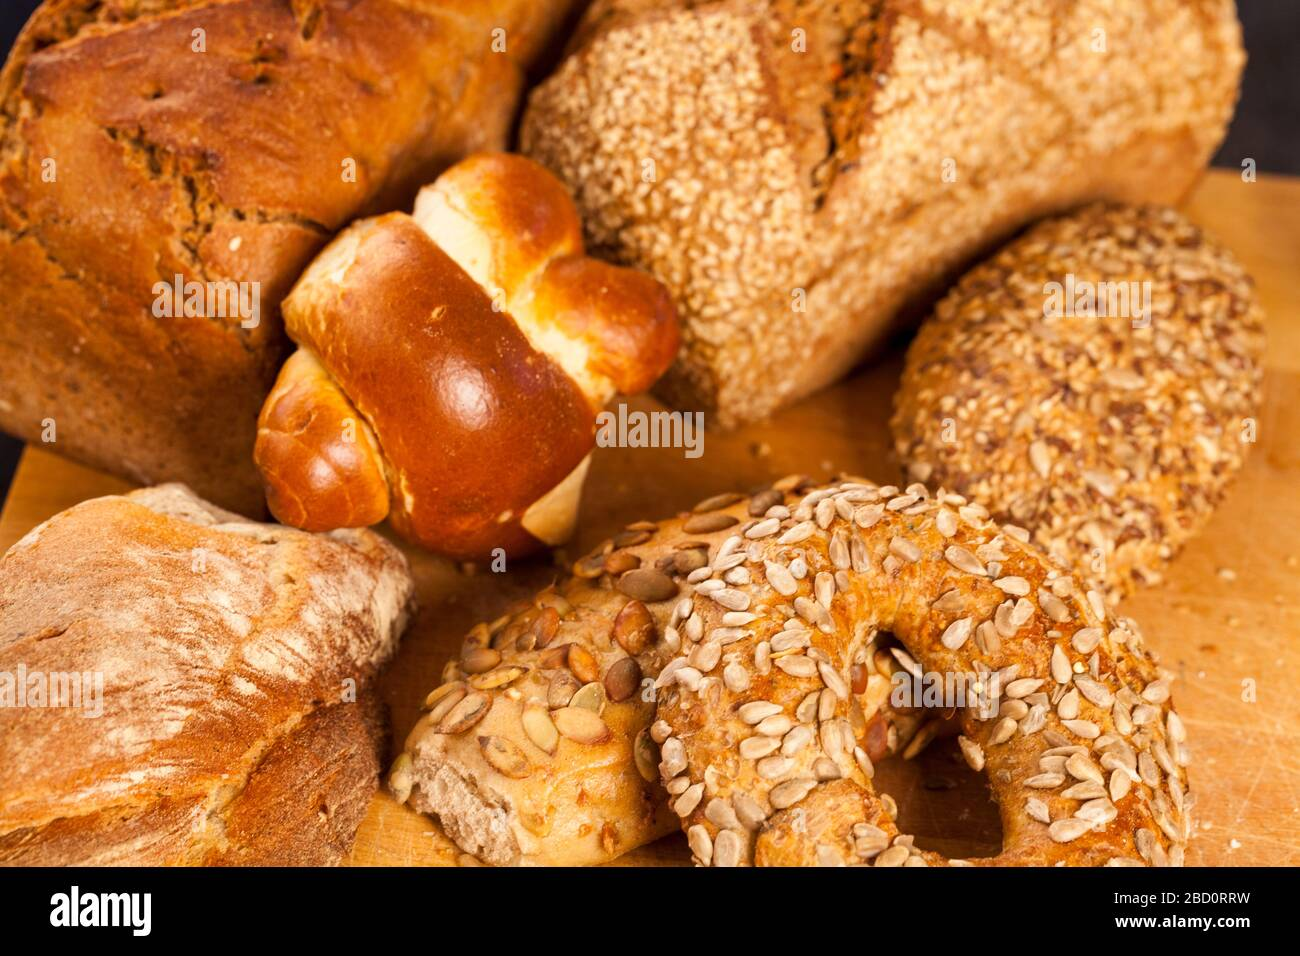 Selection of freshly baked gourmet rolls and loaves of bread Stock Photo